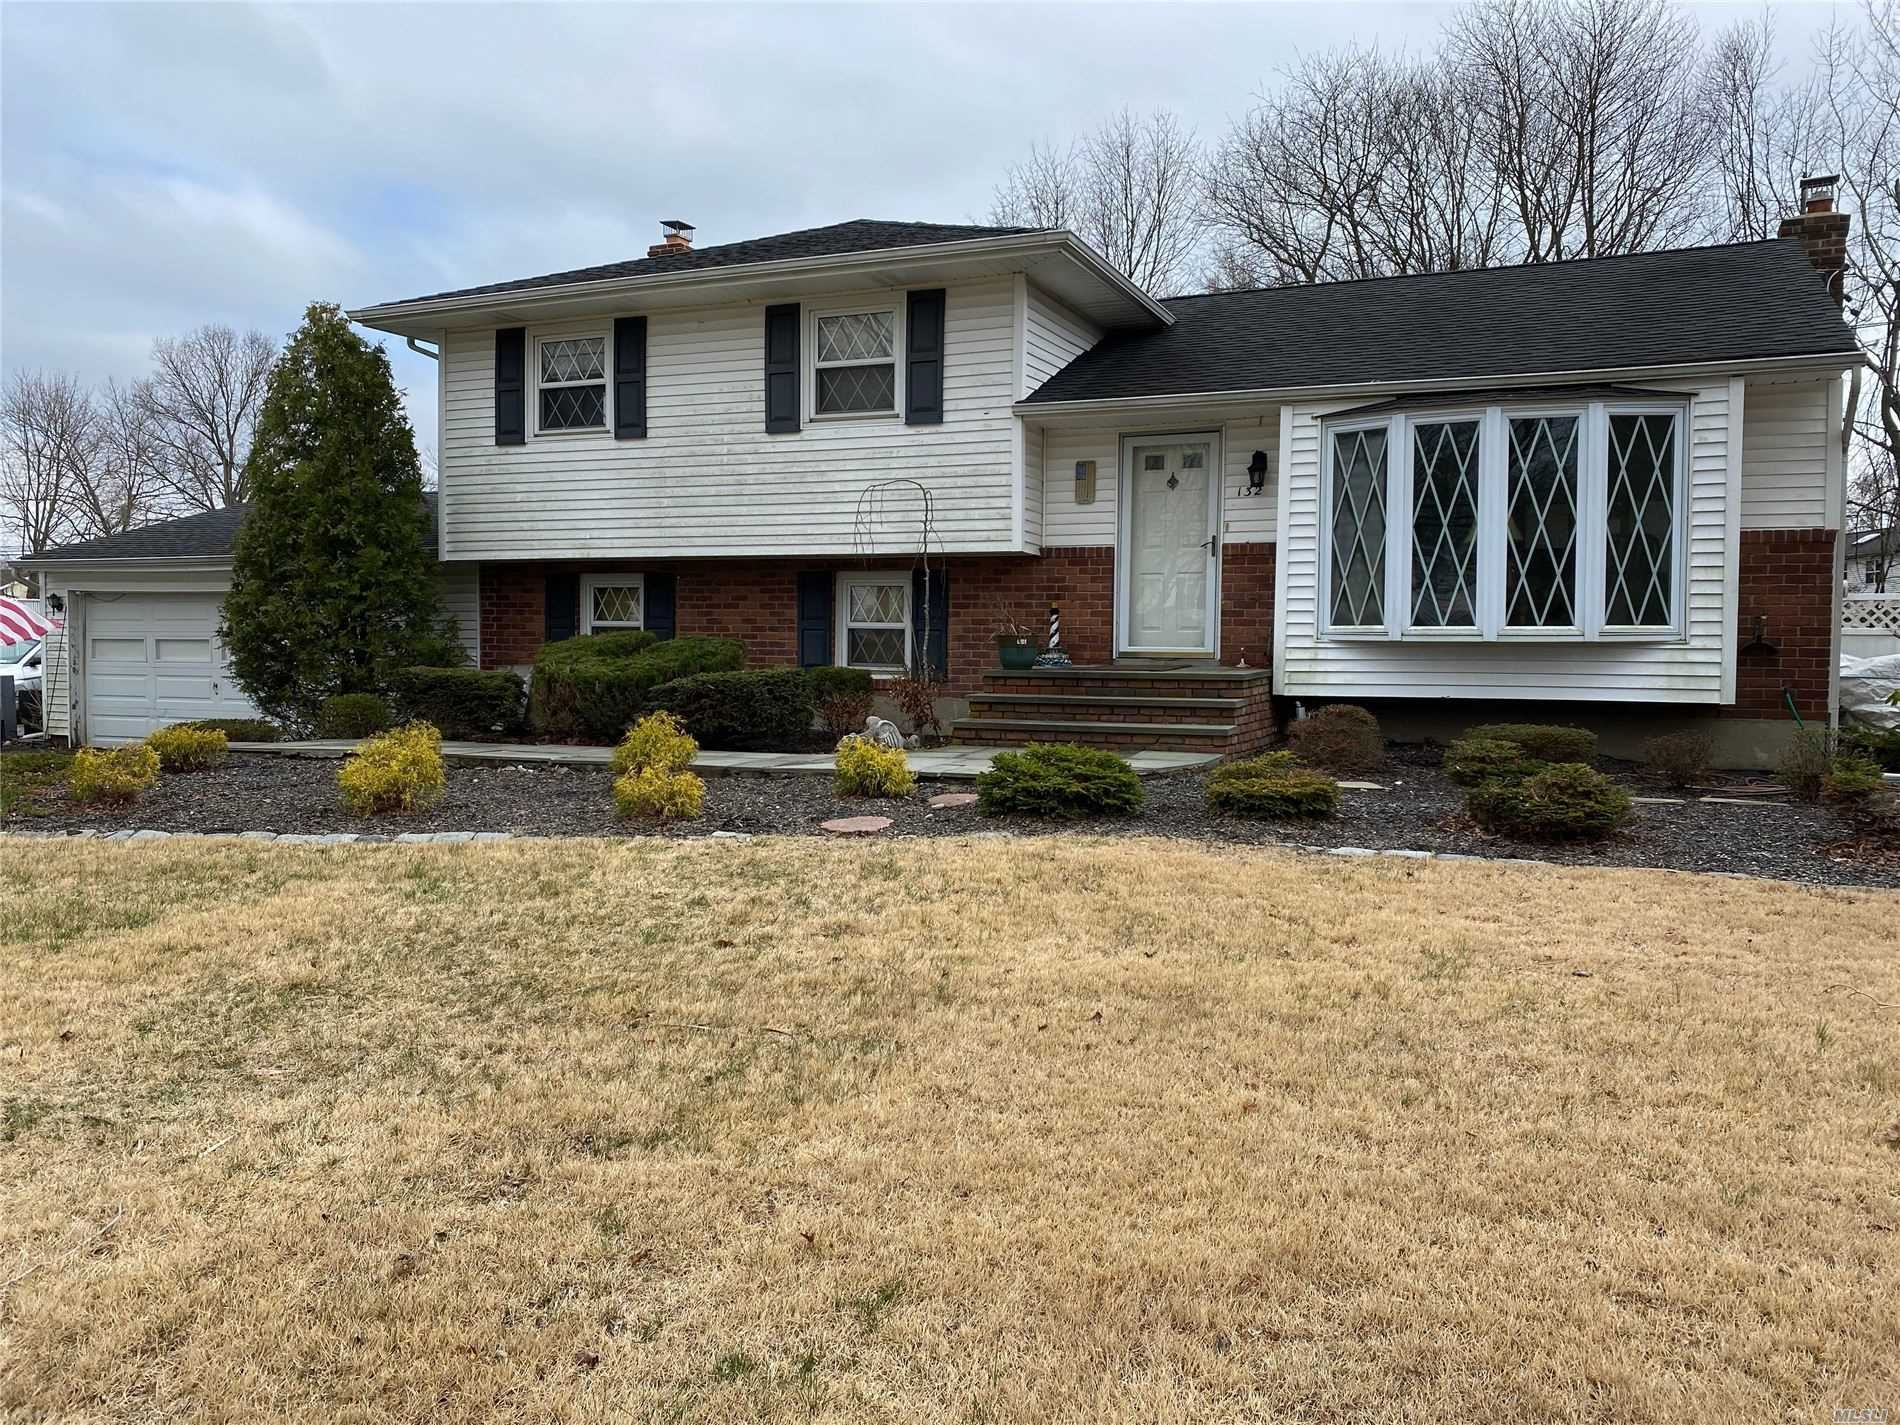 132 Ketay Dr. South Dr, East Northport, NY 11731 - MLS#: 3210276